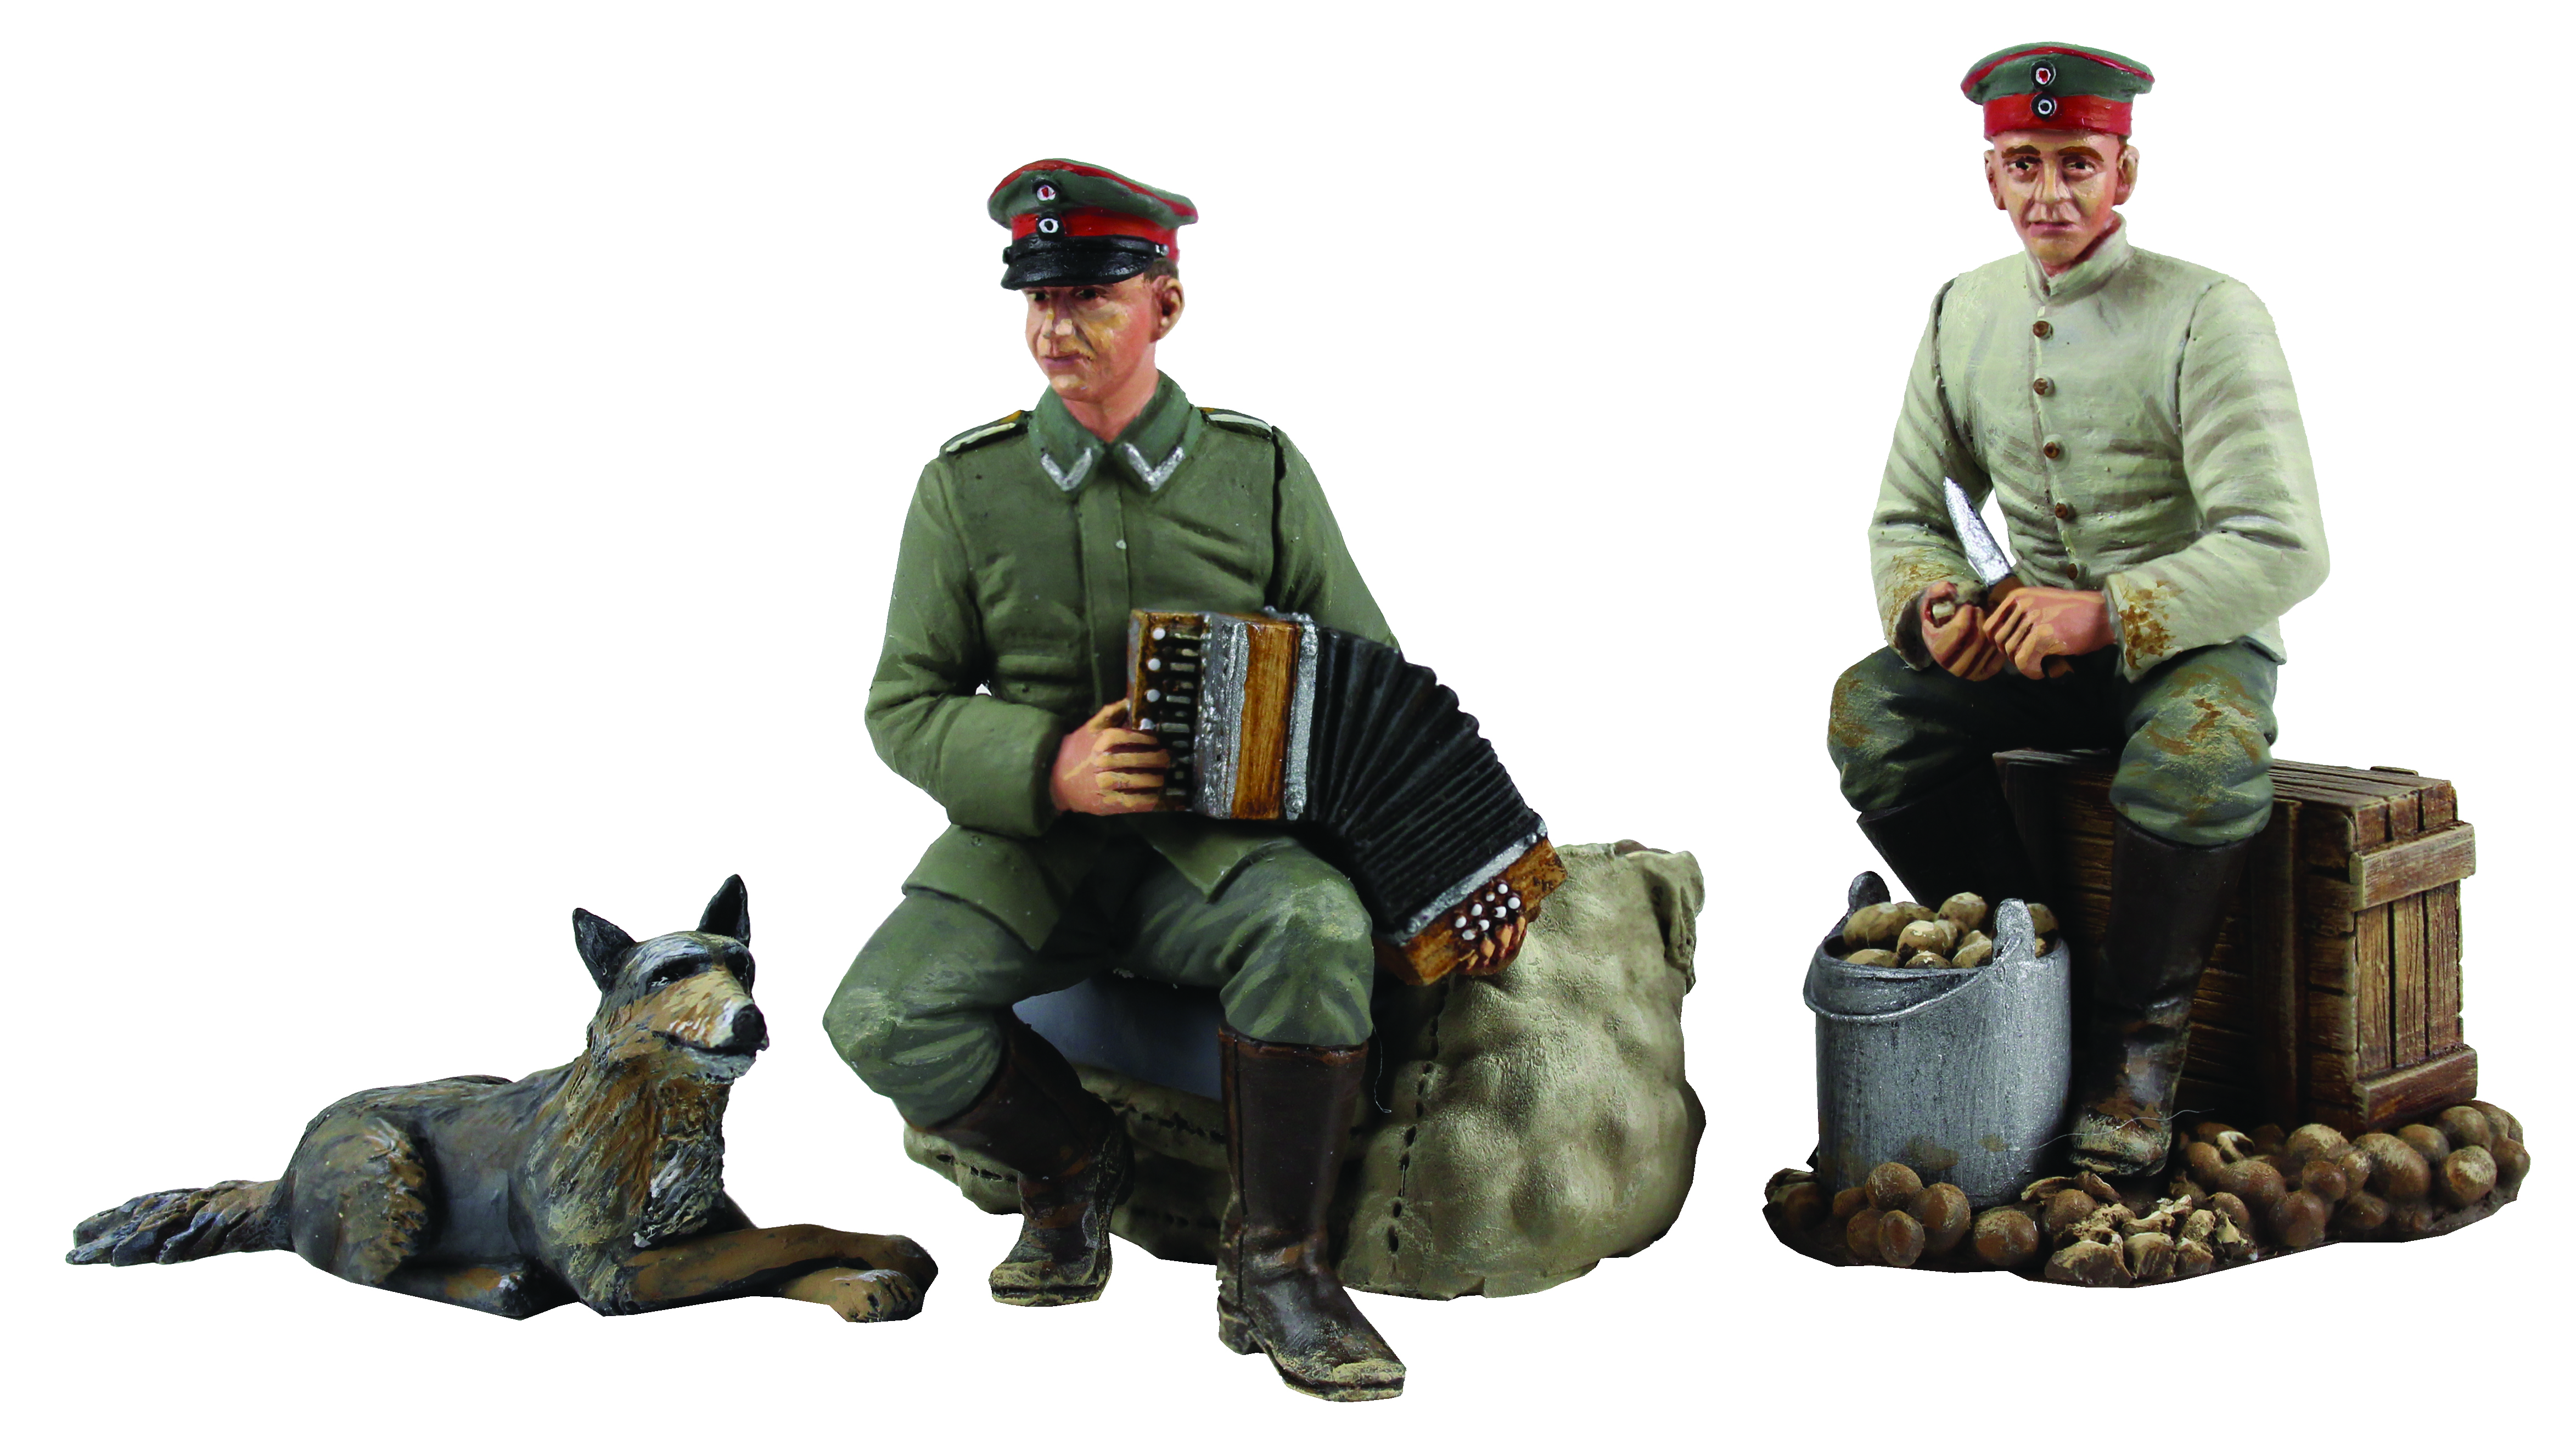 """""""Music to Peel By"""" 1914-18 German Infantry Seated Peeling Potatoes and Seated Playing Concertina - 4 Piece Set Limited Edition of 400 Sets"""